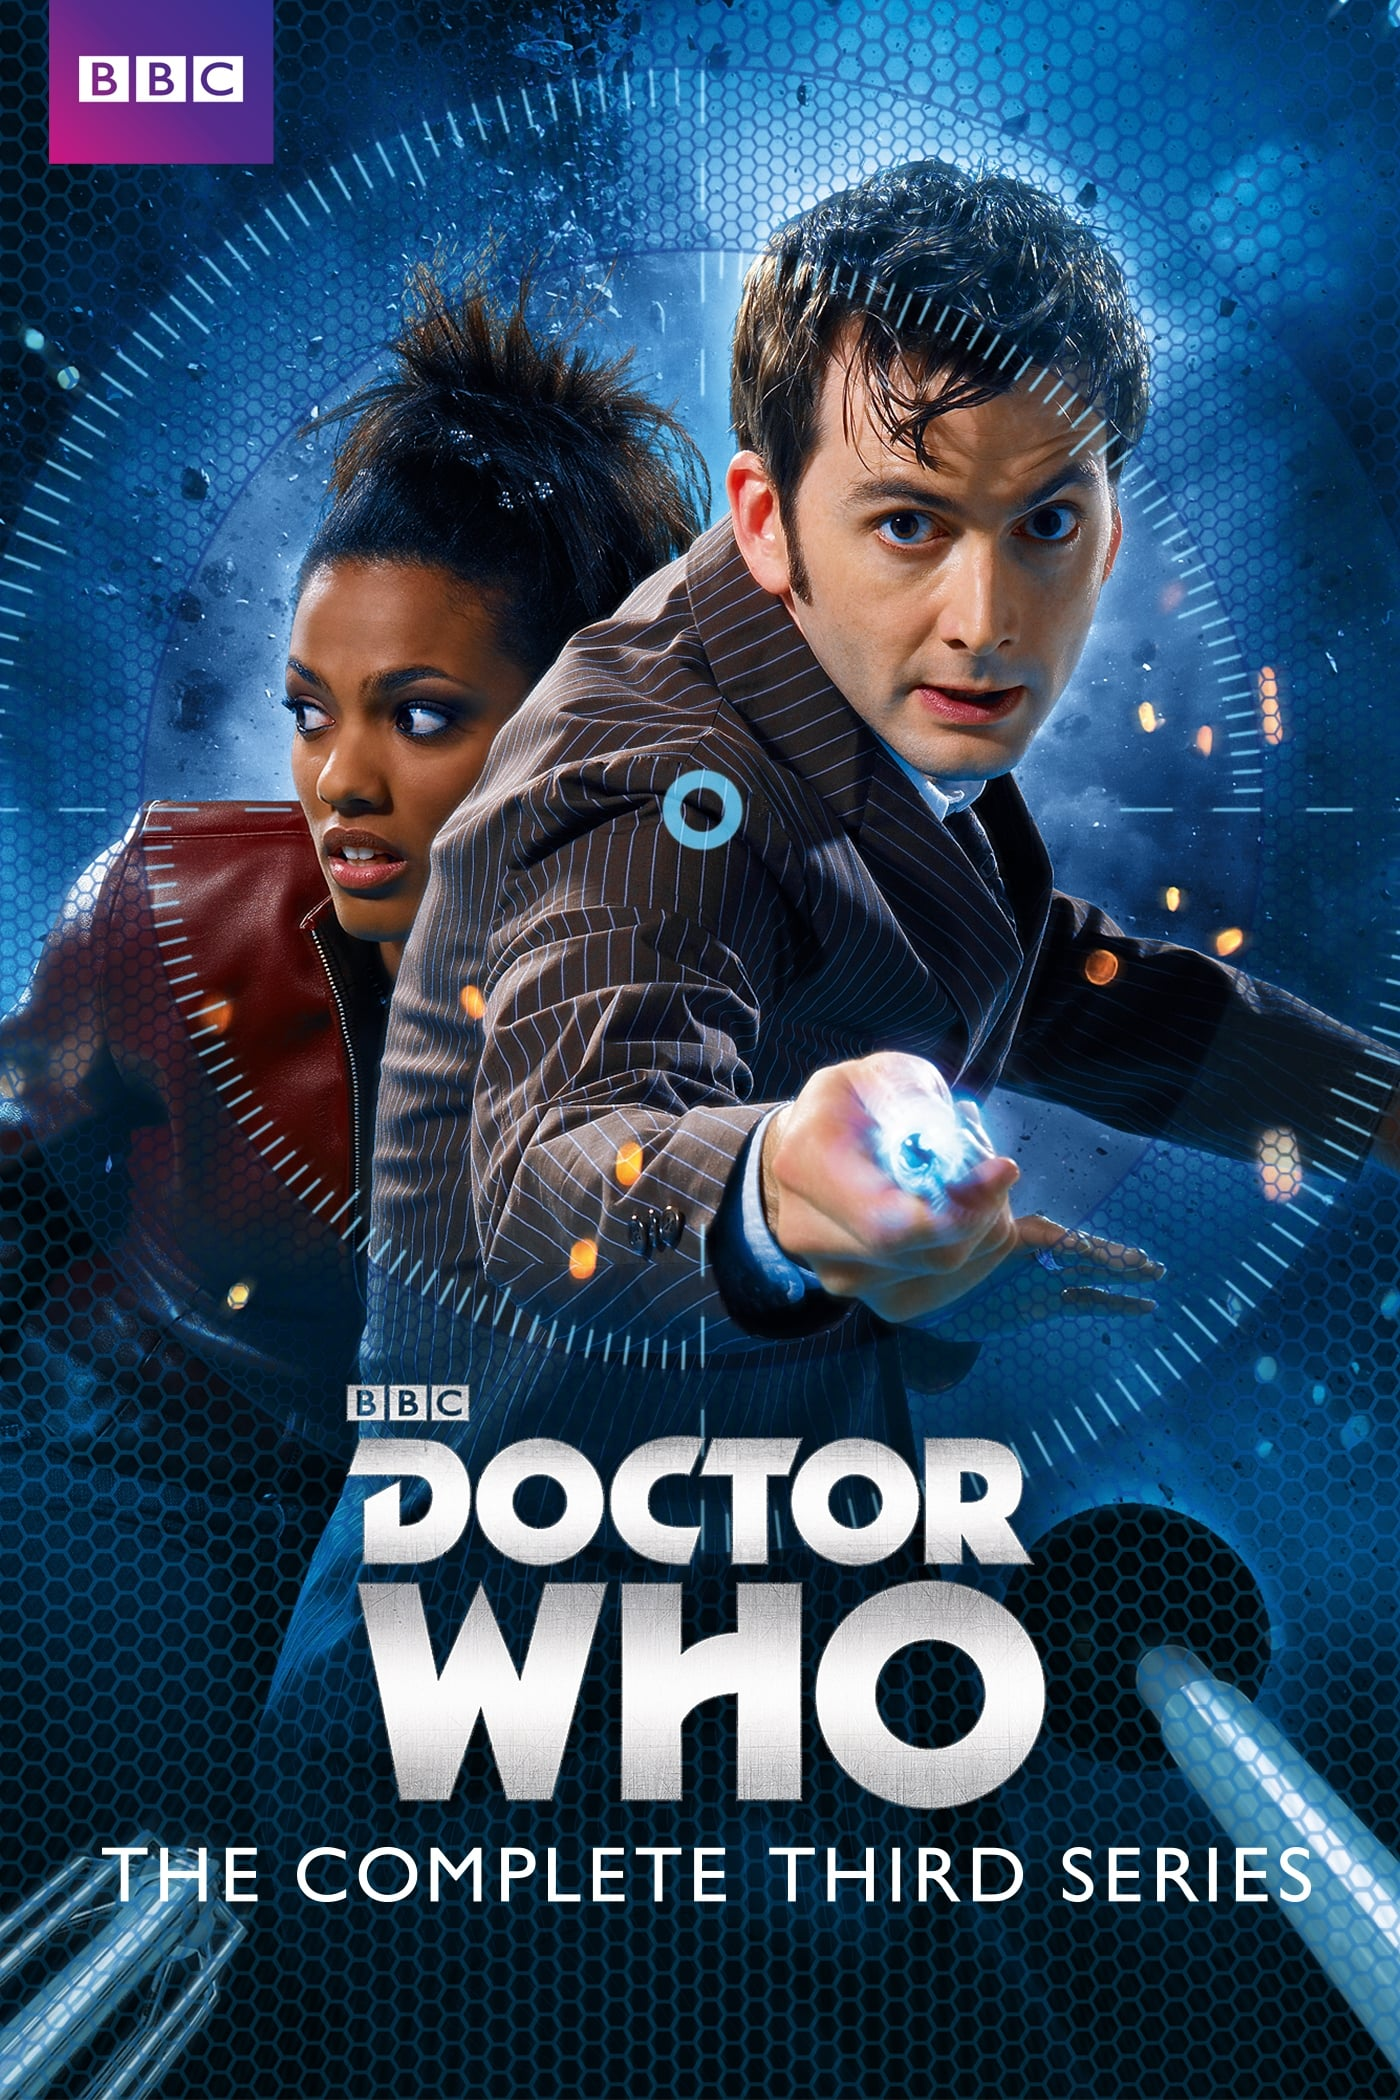 Doctor Who 3ª Temporada (2010) - Torrent